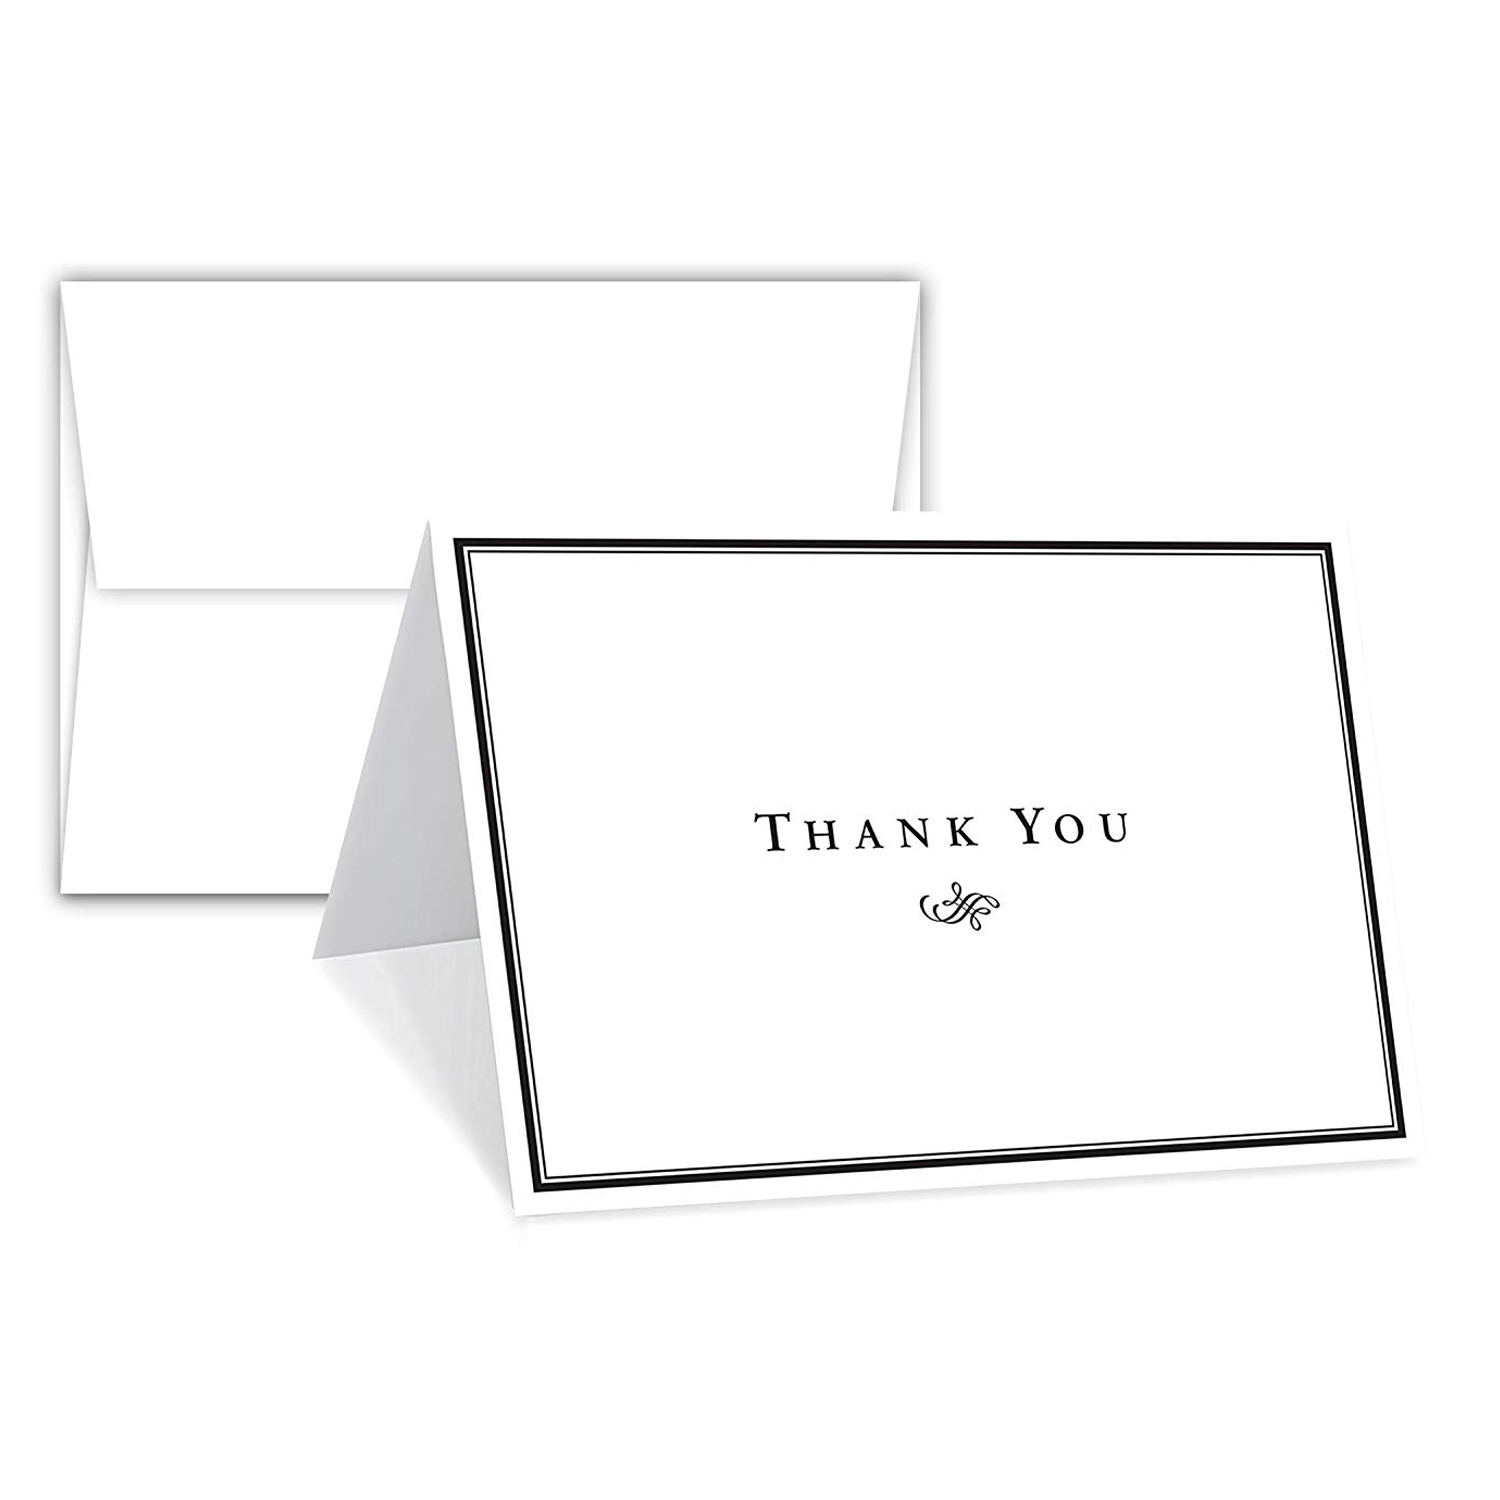 Thank You Greeting Cards 4.5″ x 6″